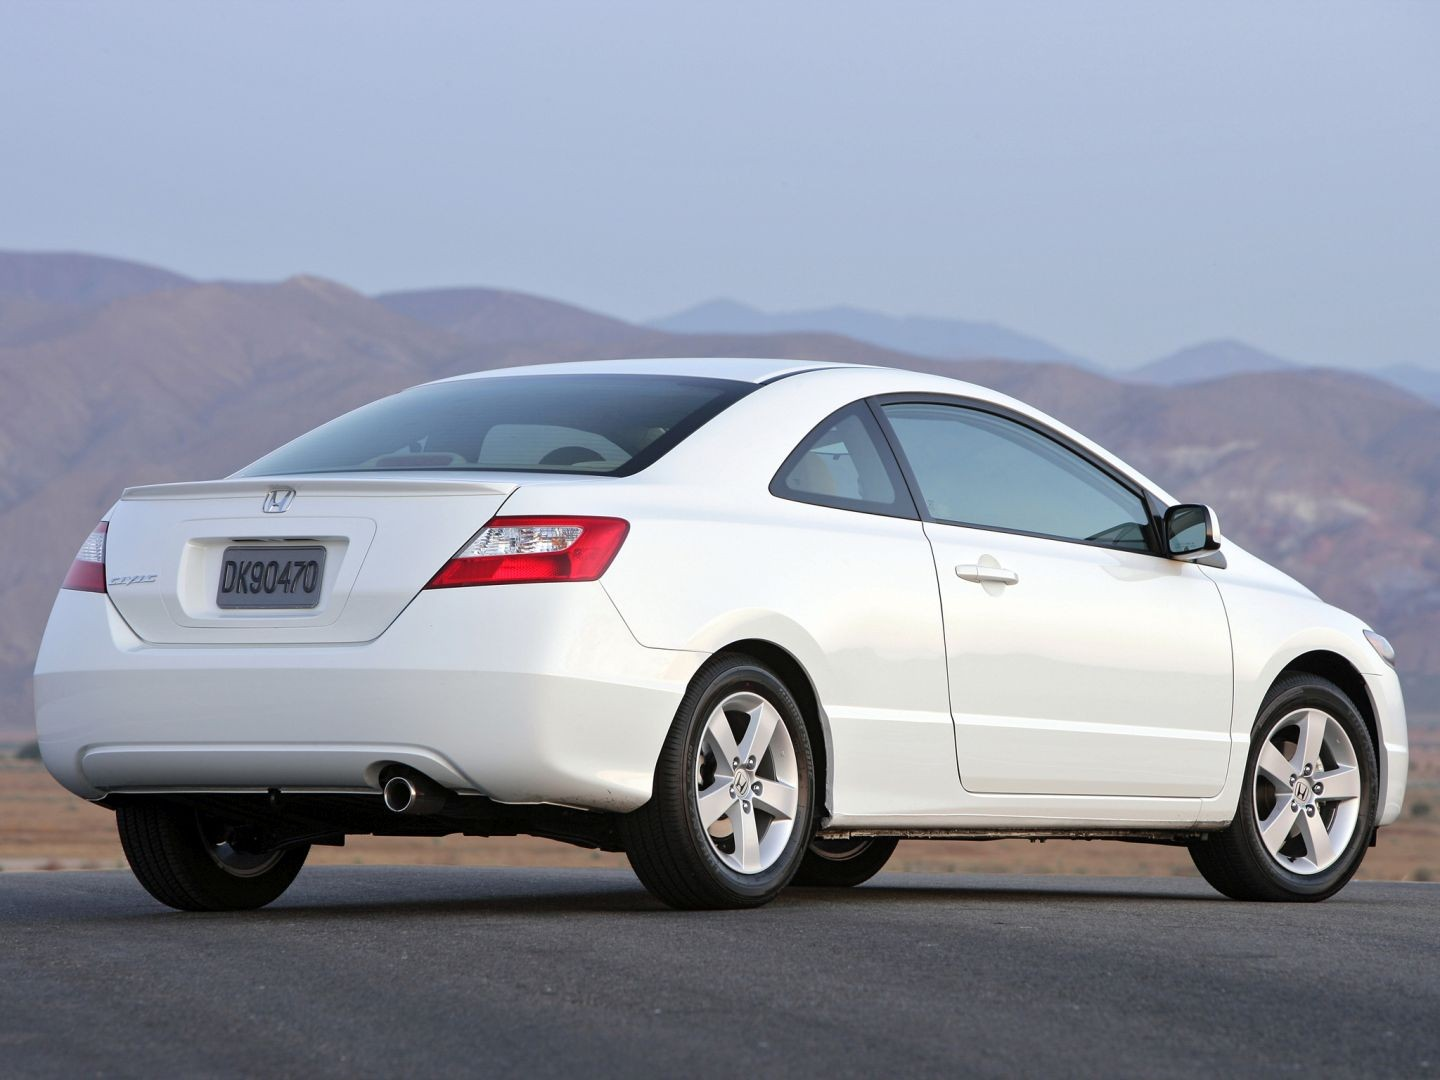 HONDA Civic Coupe Si - 2006, 2007, 2008 - autoevolution